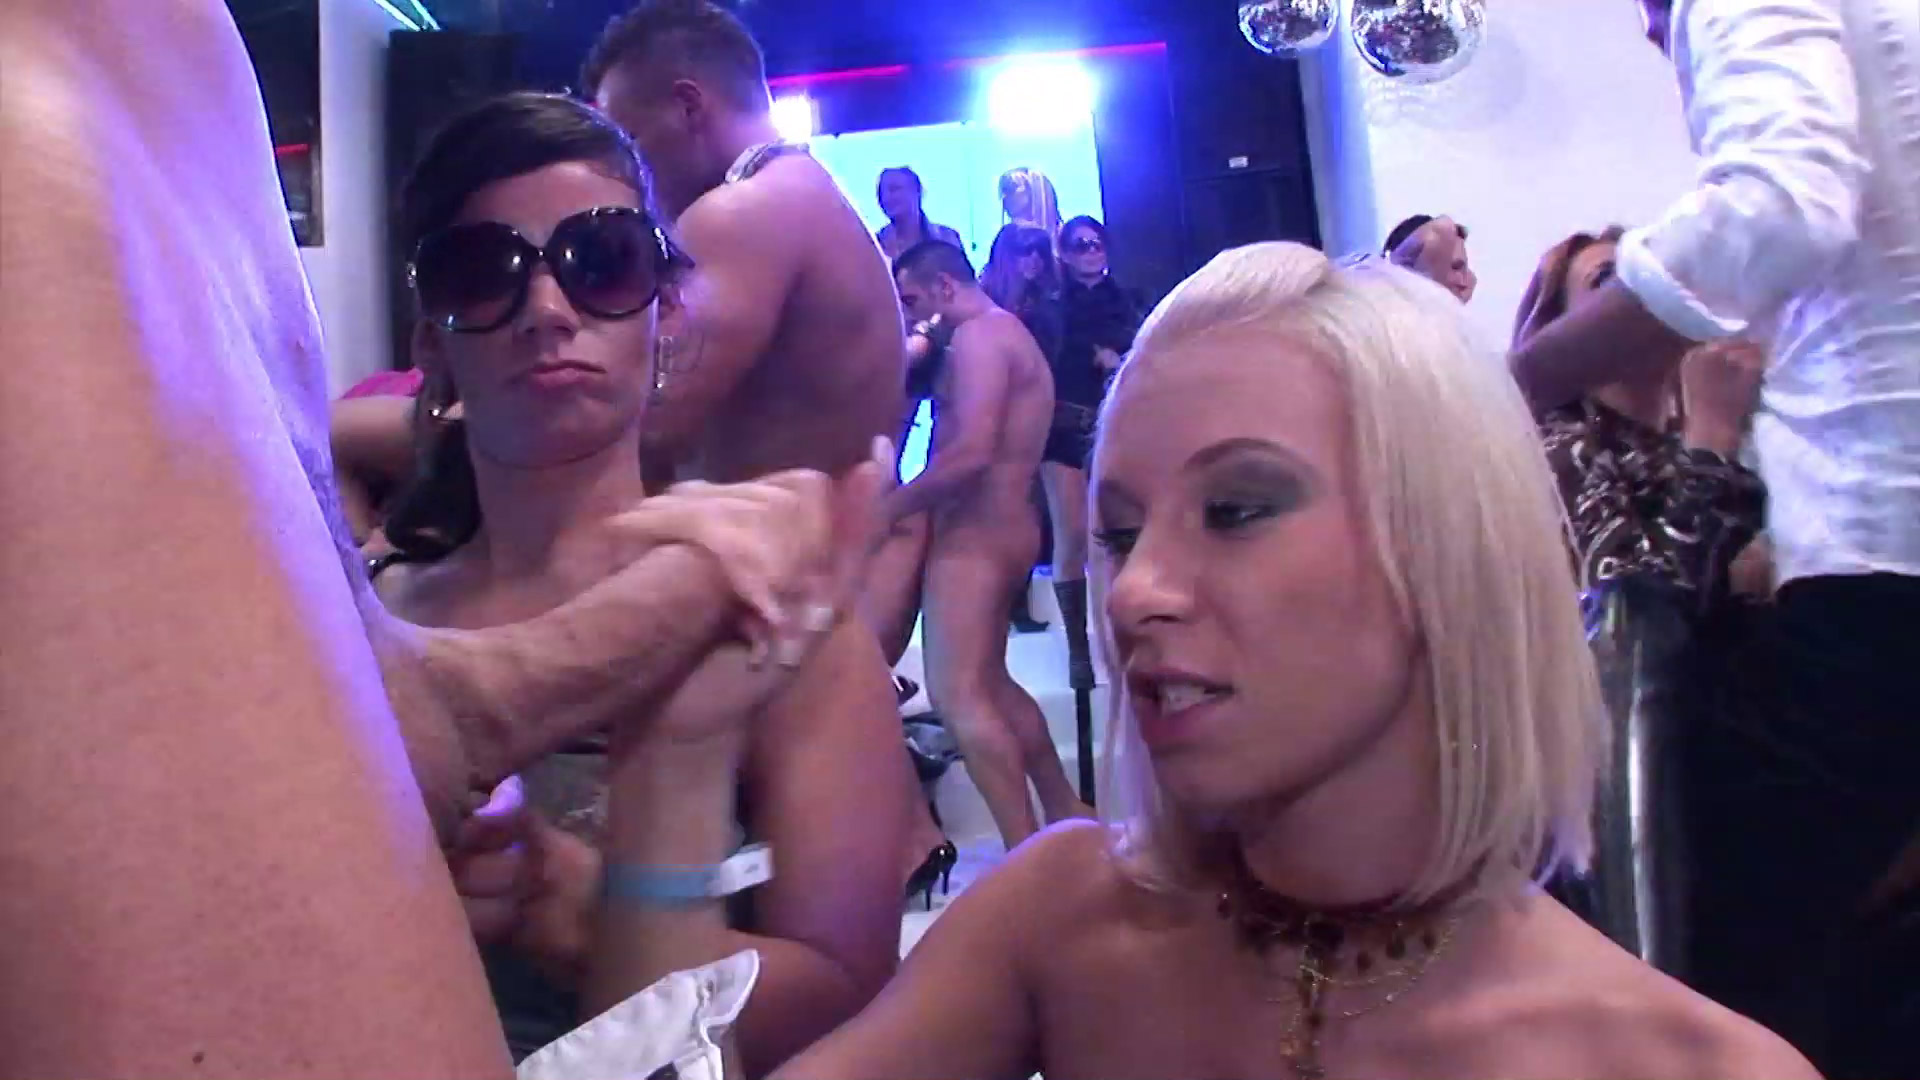 swingerclub party gangbang